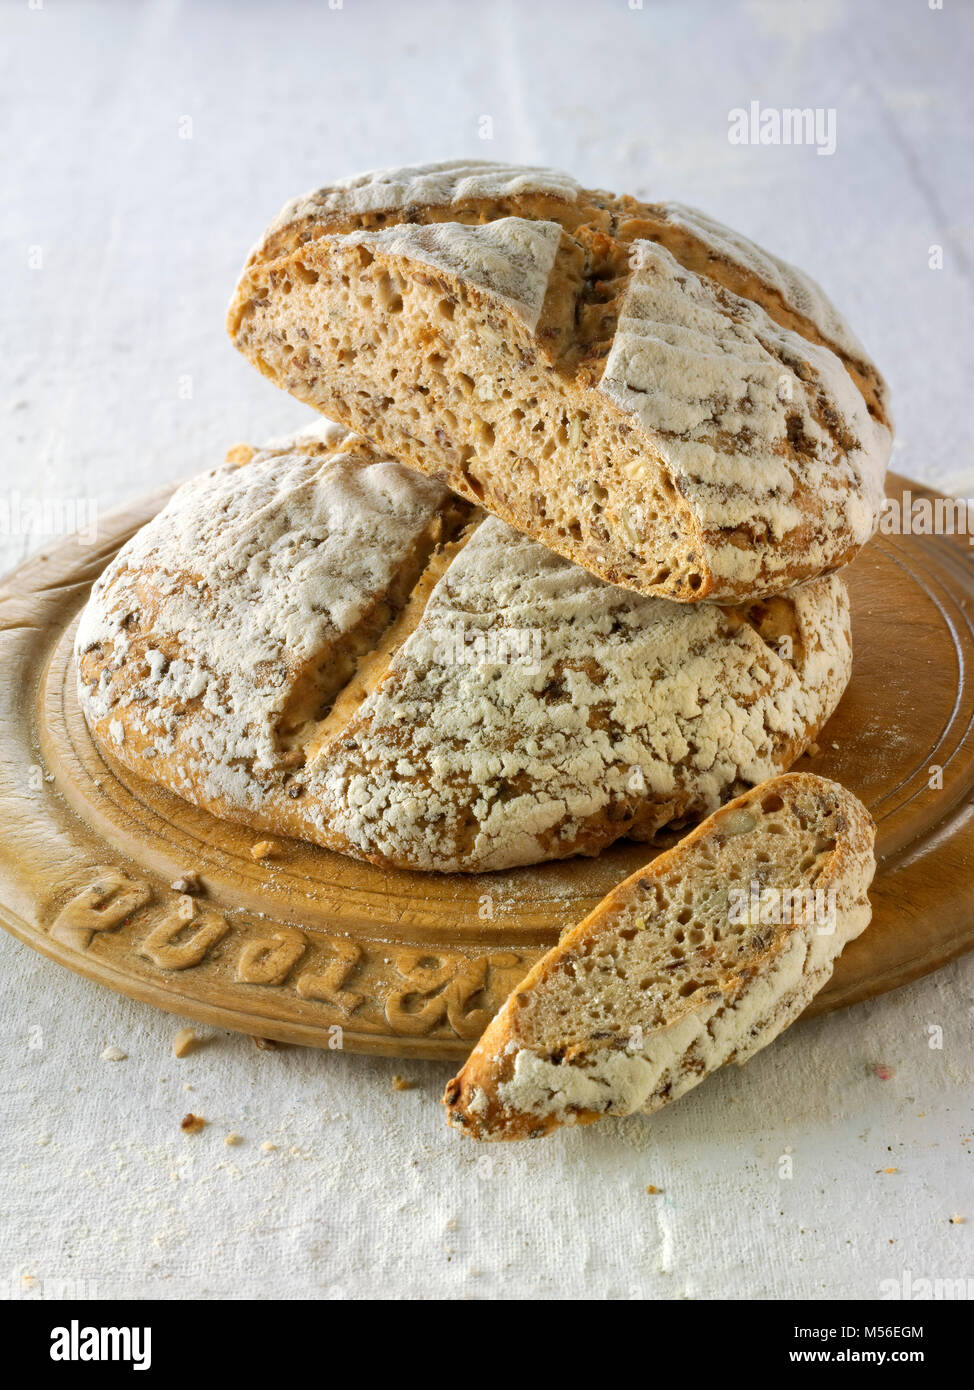 Hand made artisan sour dough wholemeal seed bread made with white, malted and rye flour - Stock Image